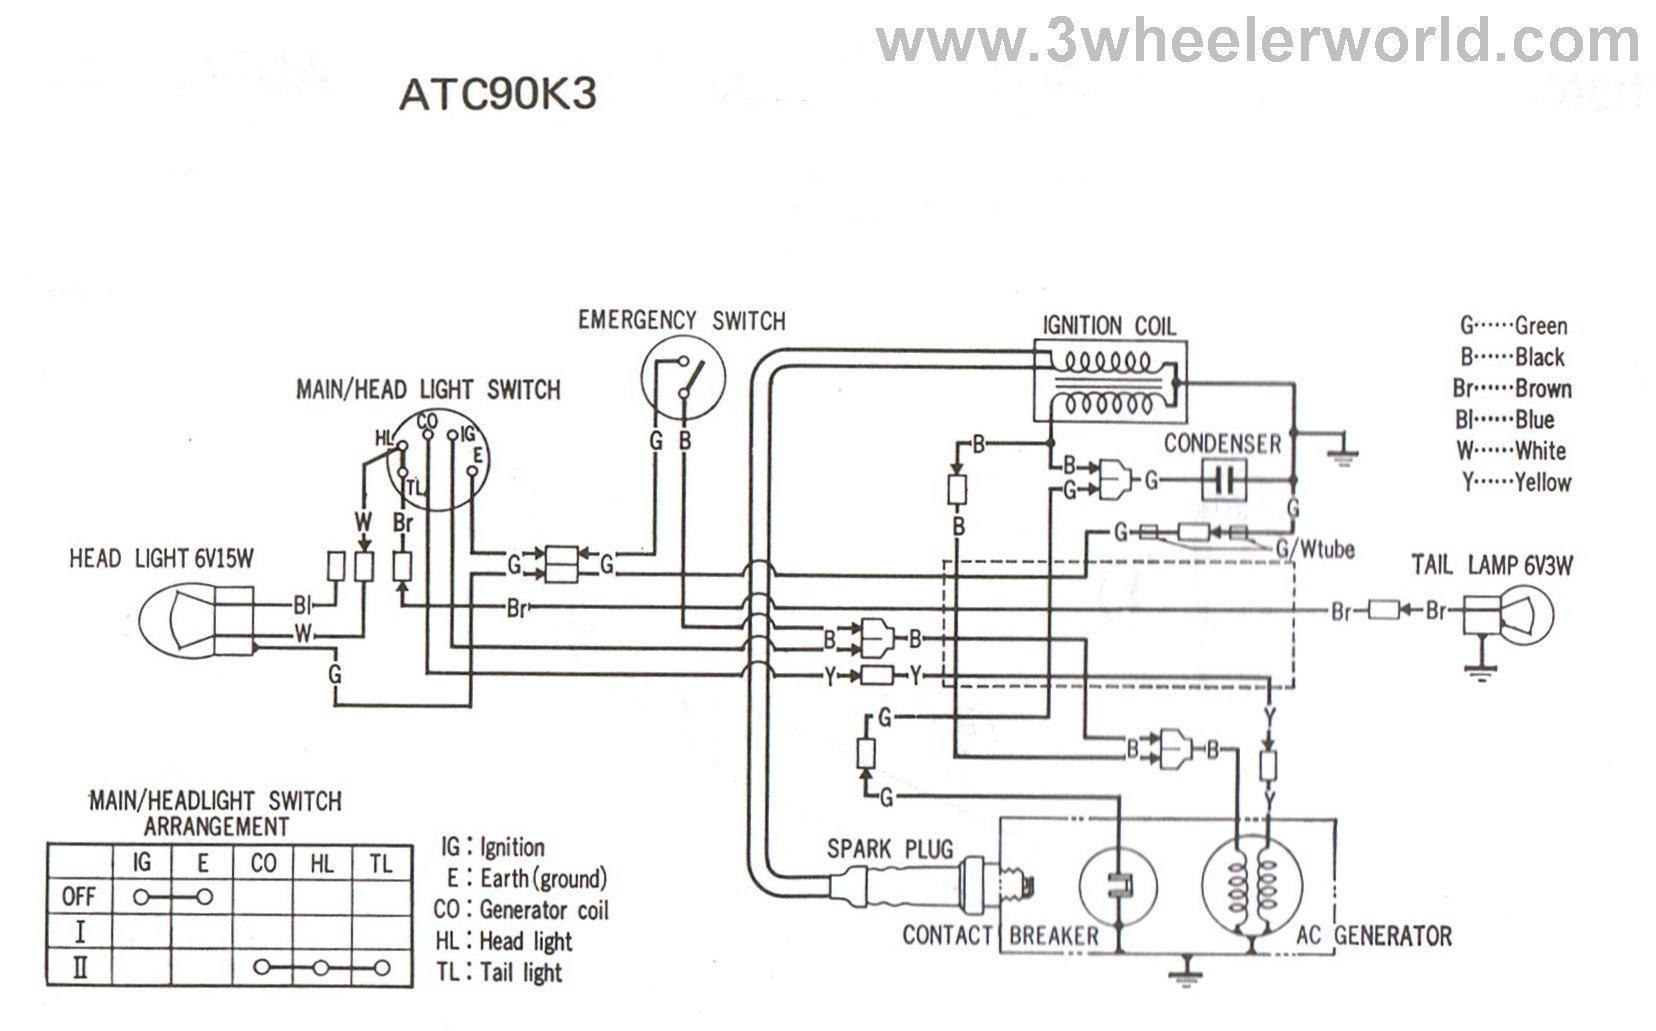 hayabusa wiring diagram wiring diagram 2009 suzuki hayabusa wiring diagram images